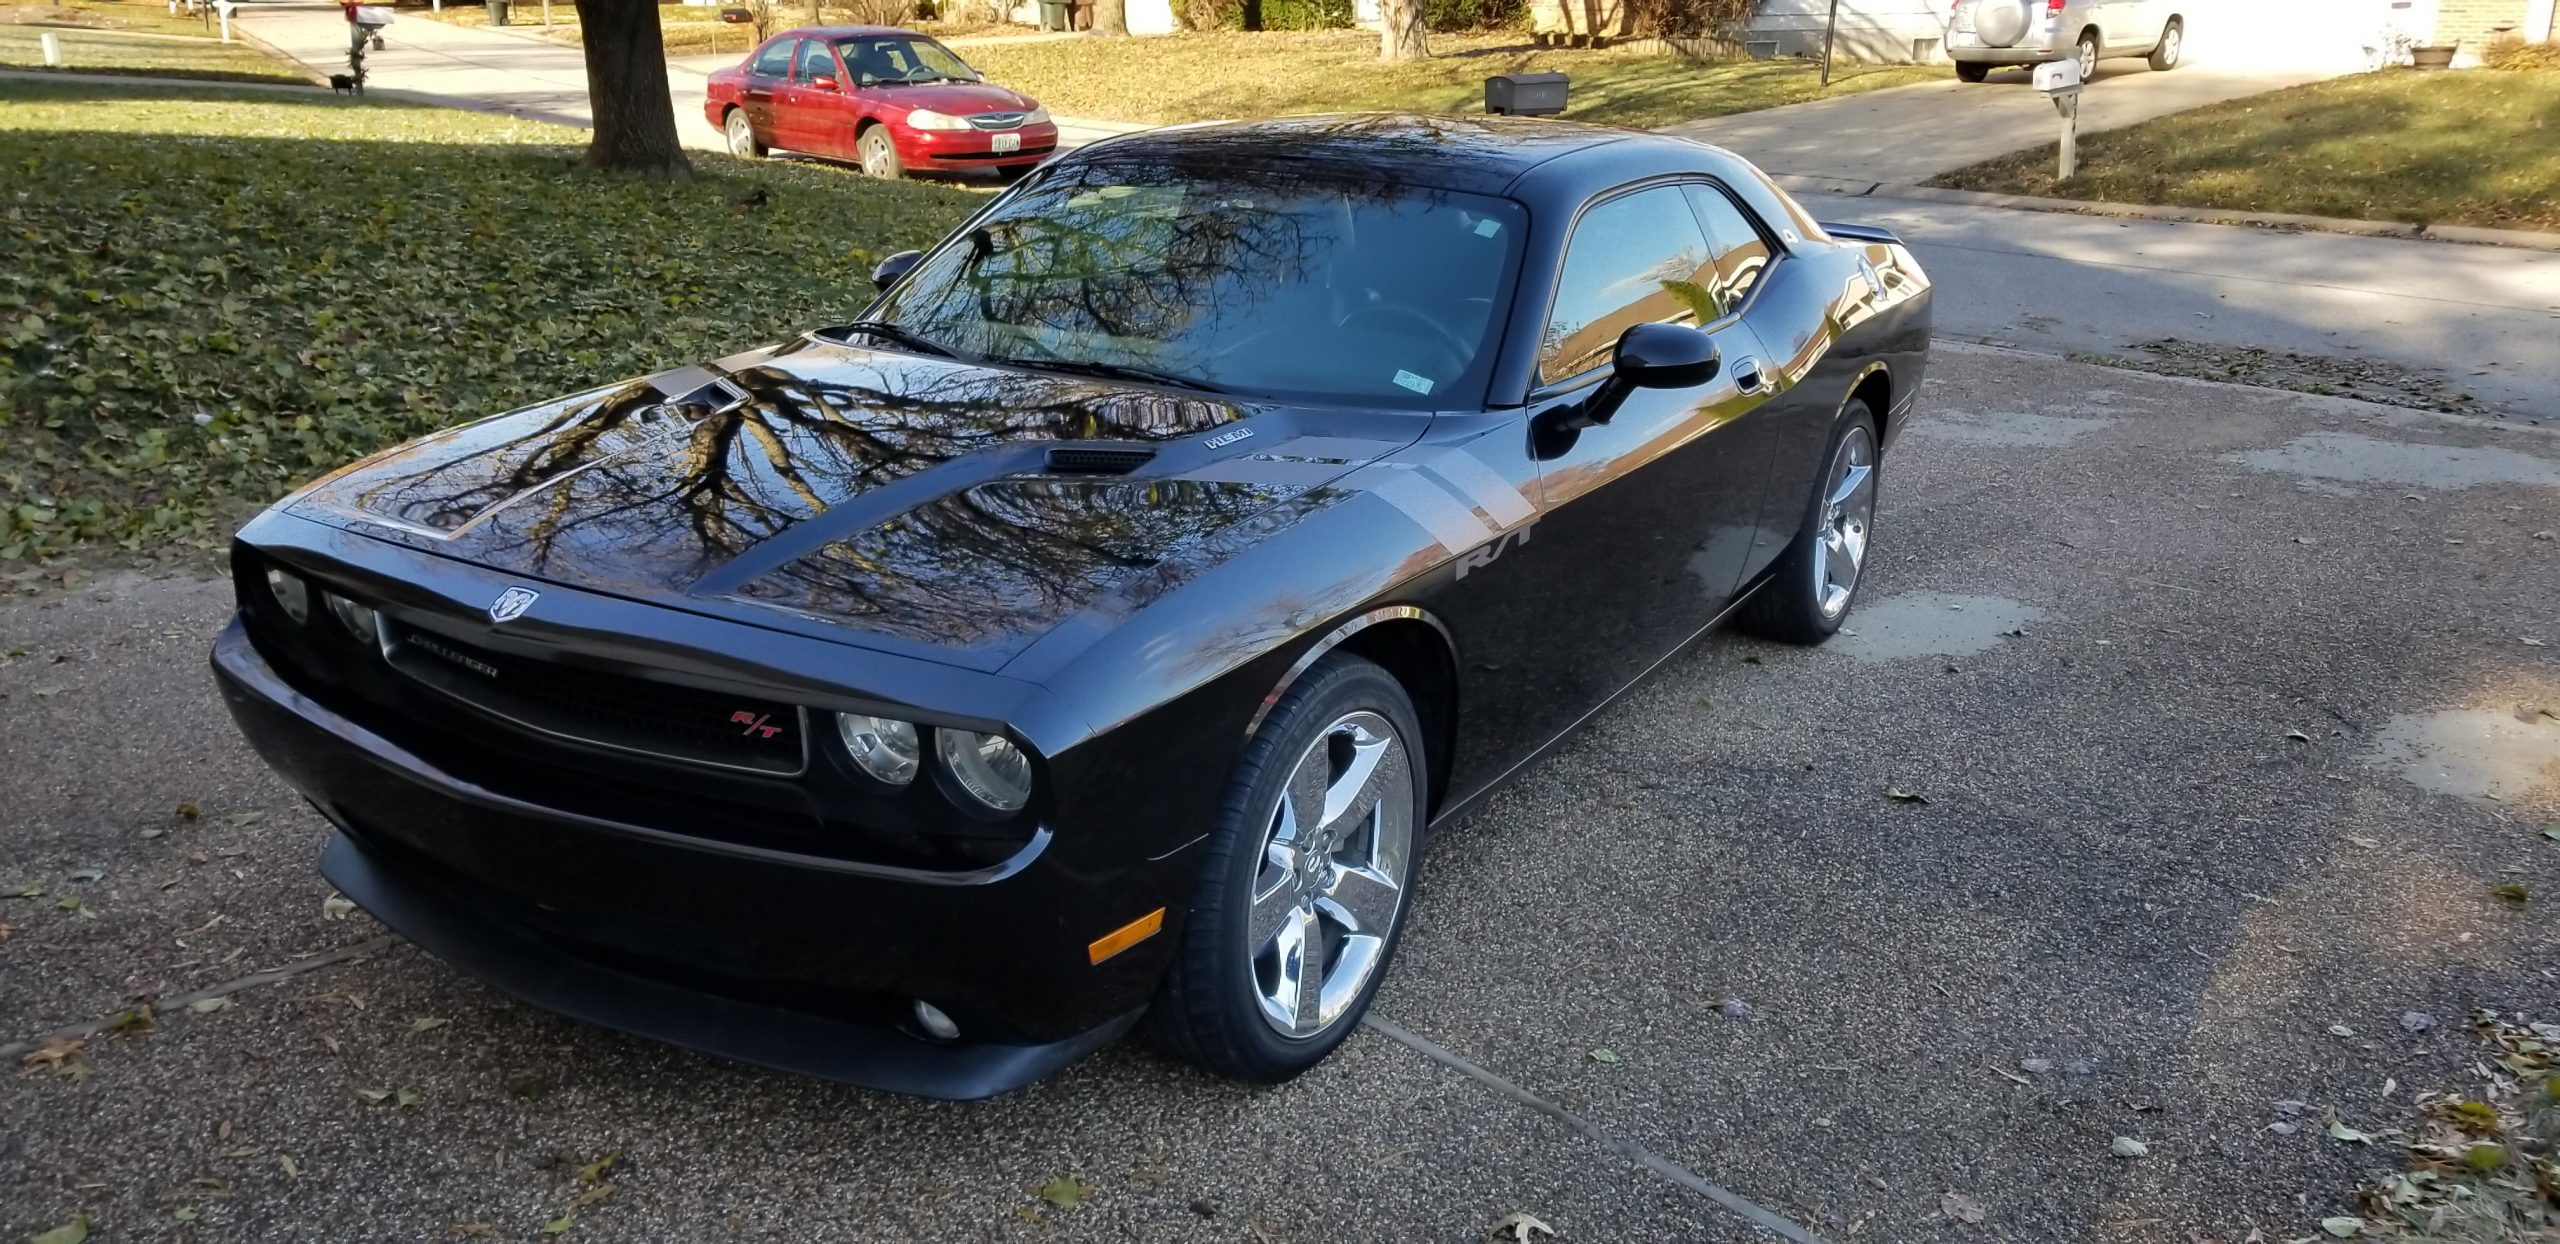 Didn't see many of them on here, so here's my 2009 Challenger R/T!